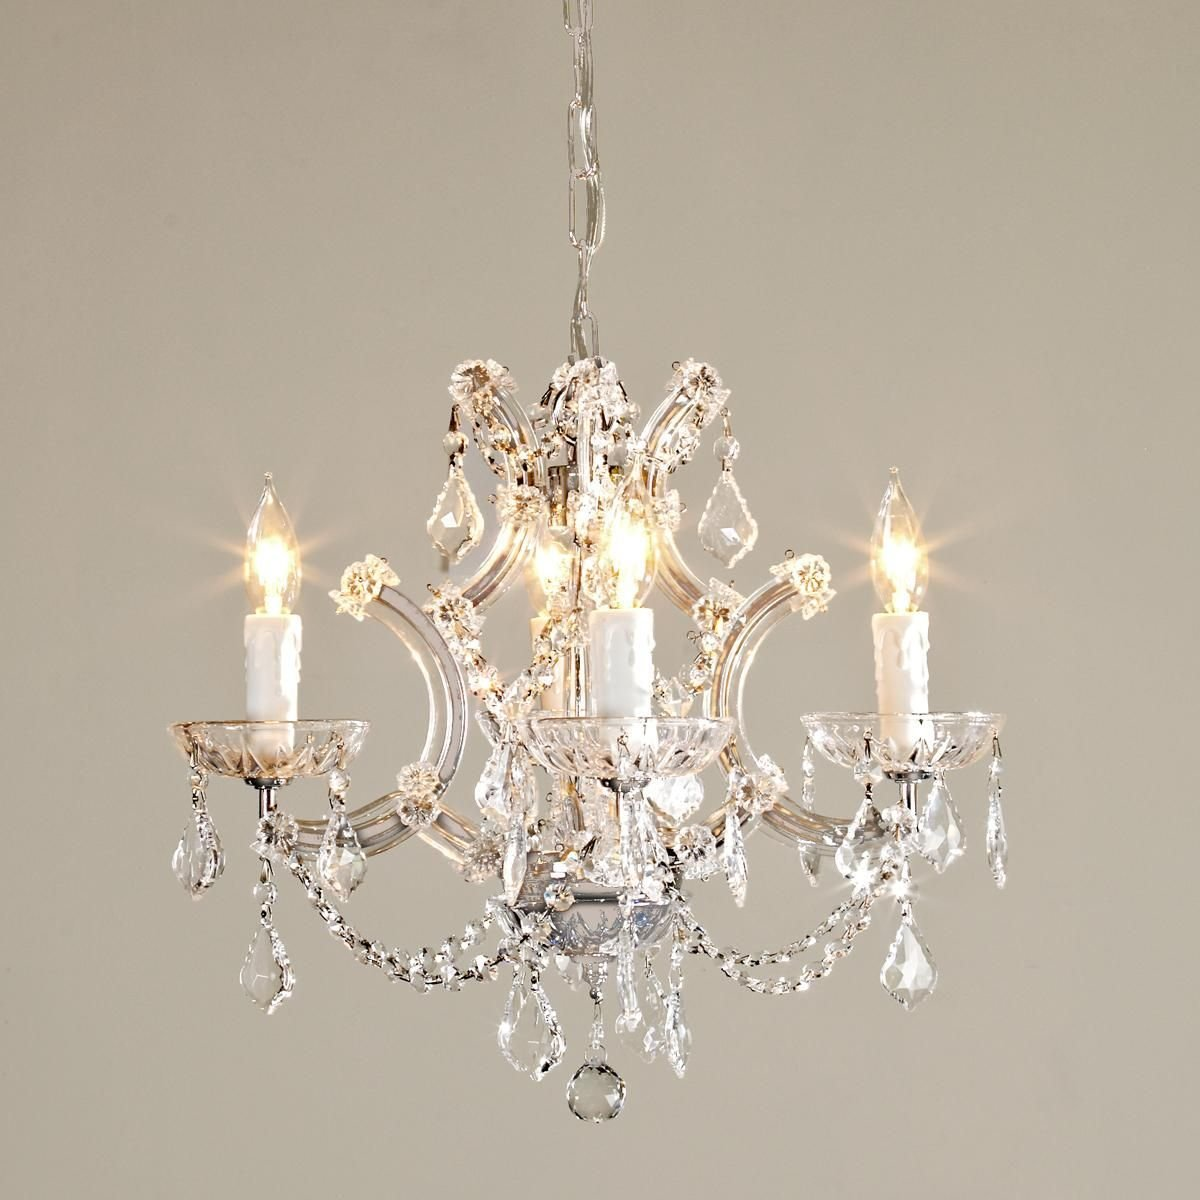 Best Round Crystal Chandelier L D Gerber Chandelier Bedroom With Pictures